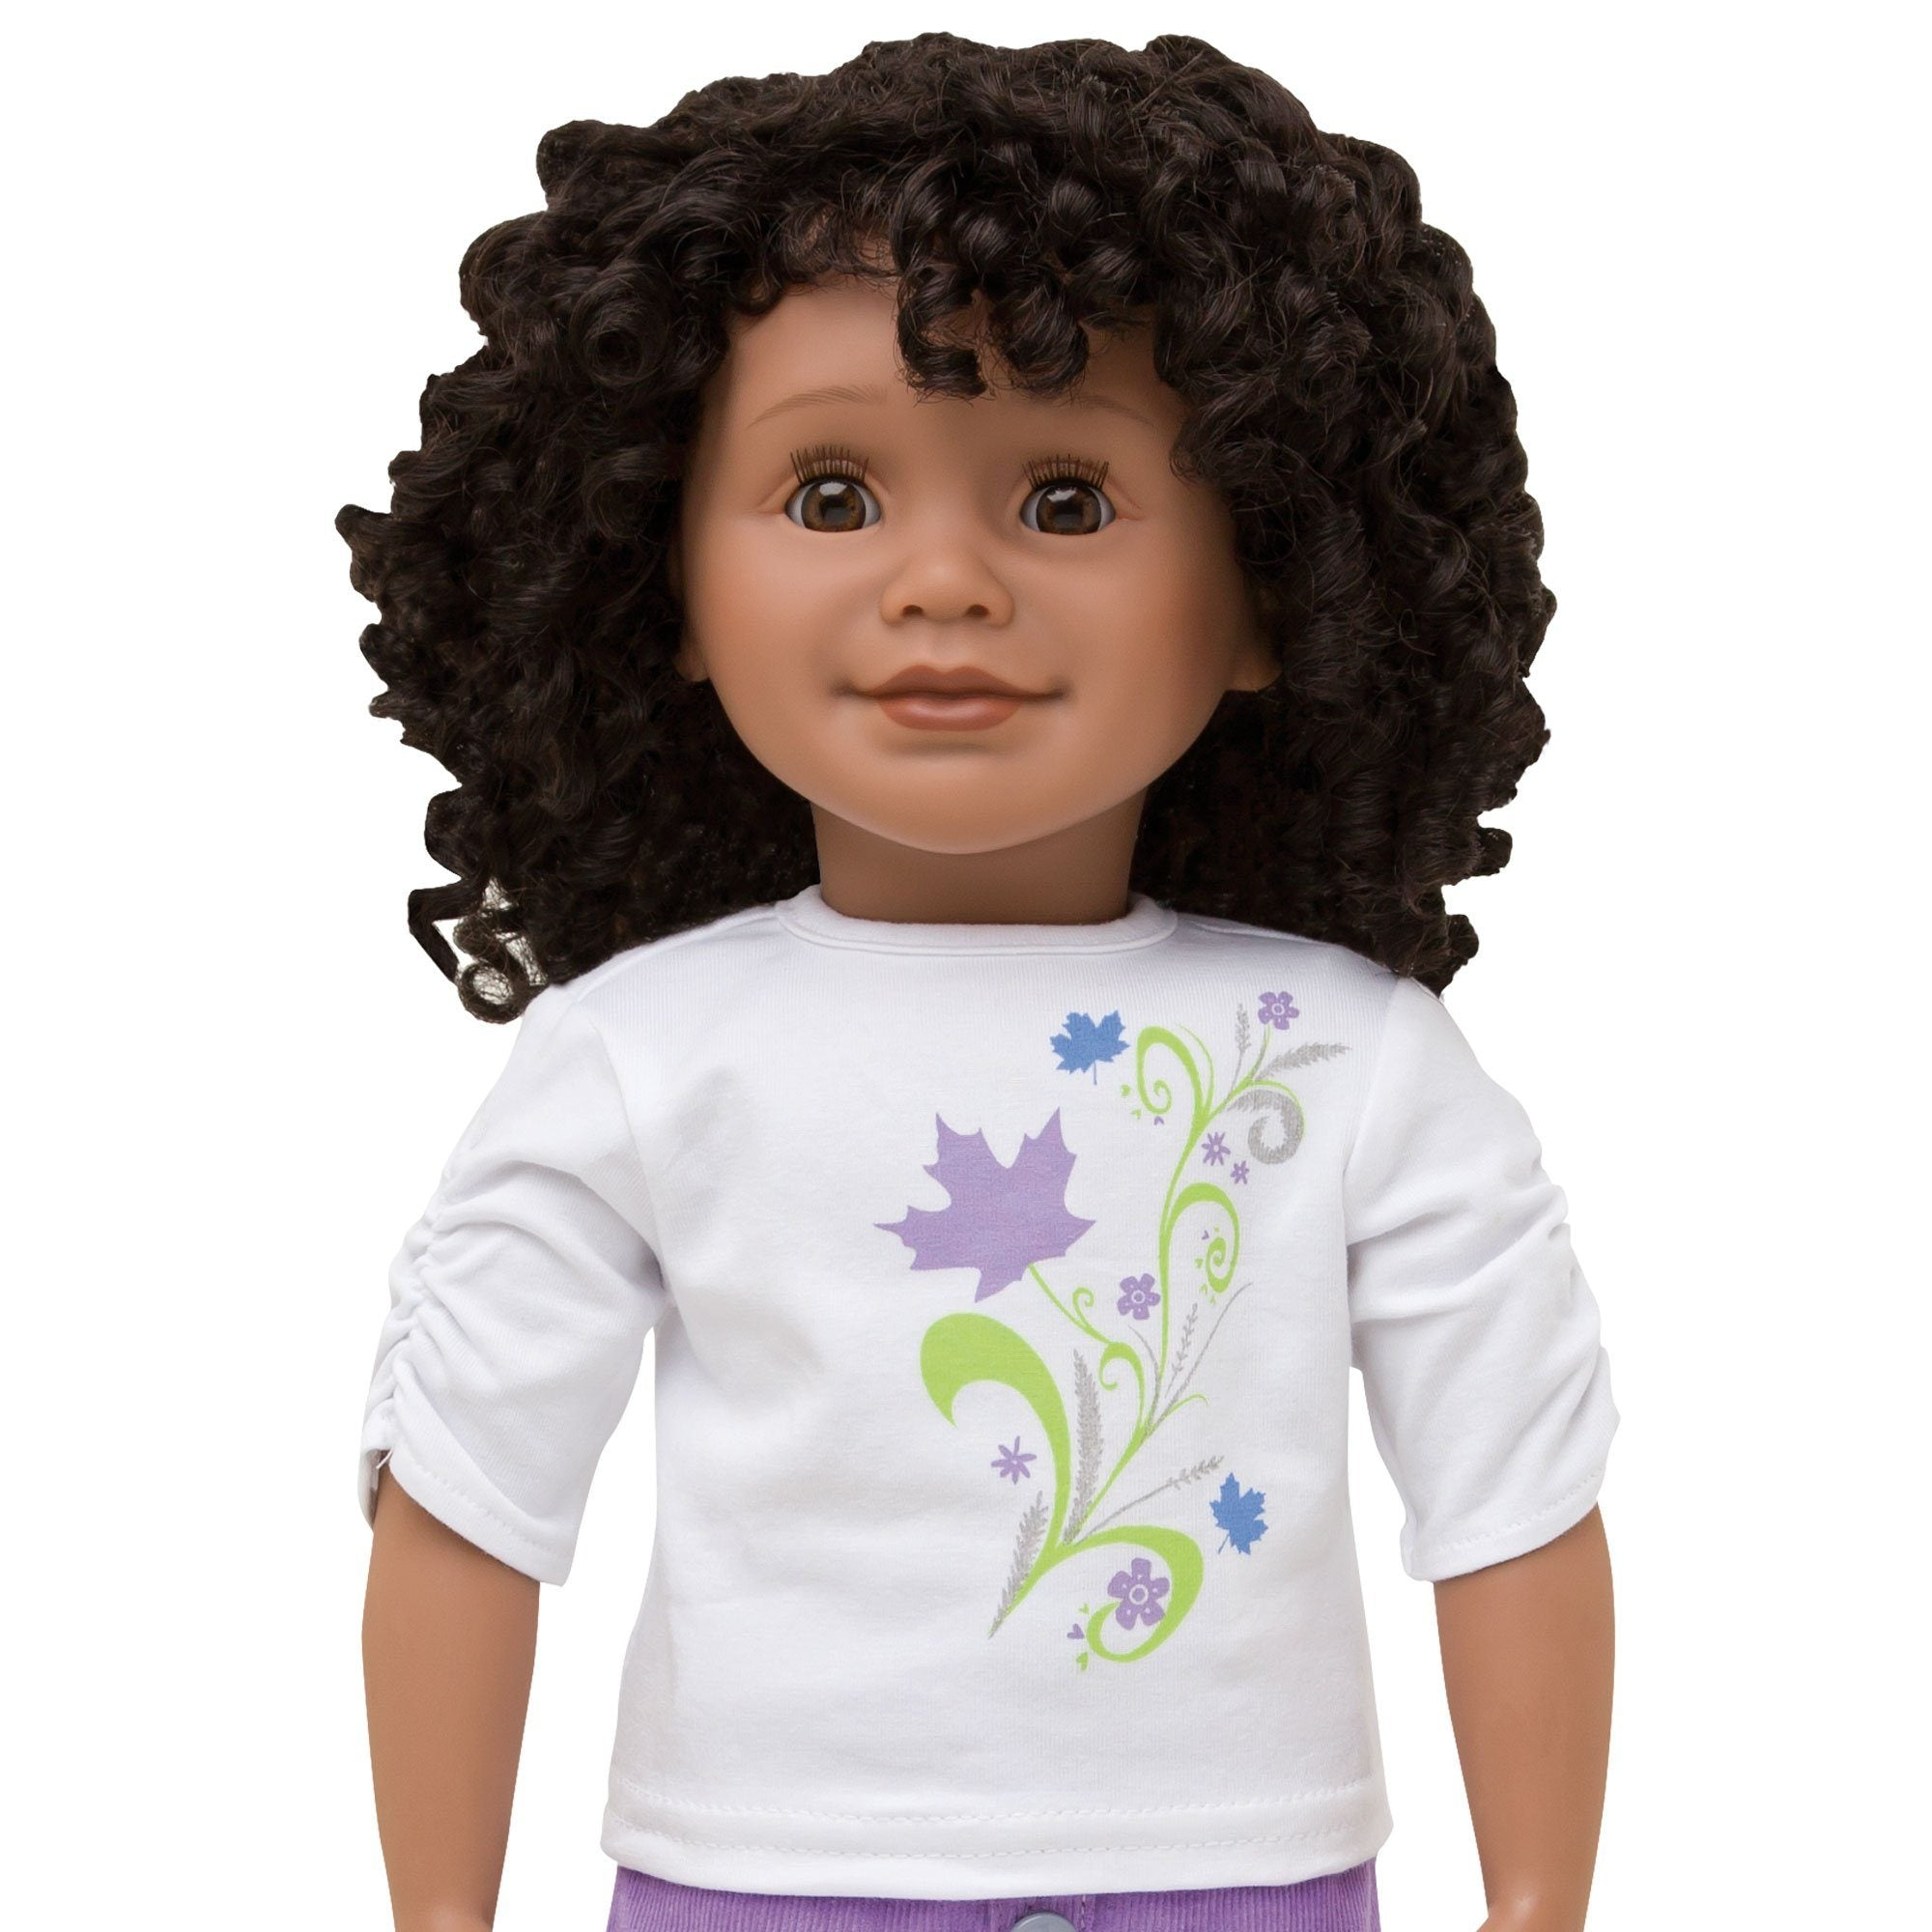 KMF11 Maplelea Friend with short curly black-brown hair, medium-dark skin, brown eyes